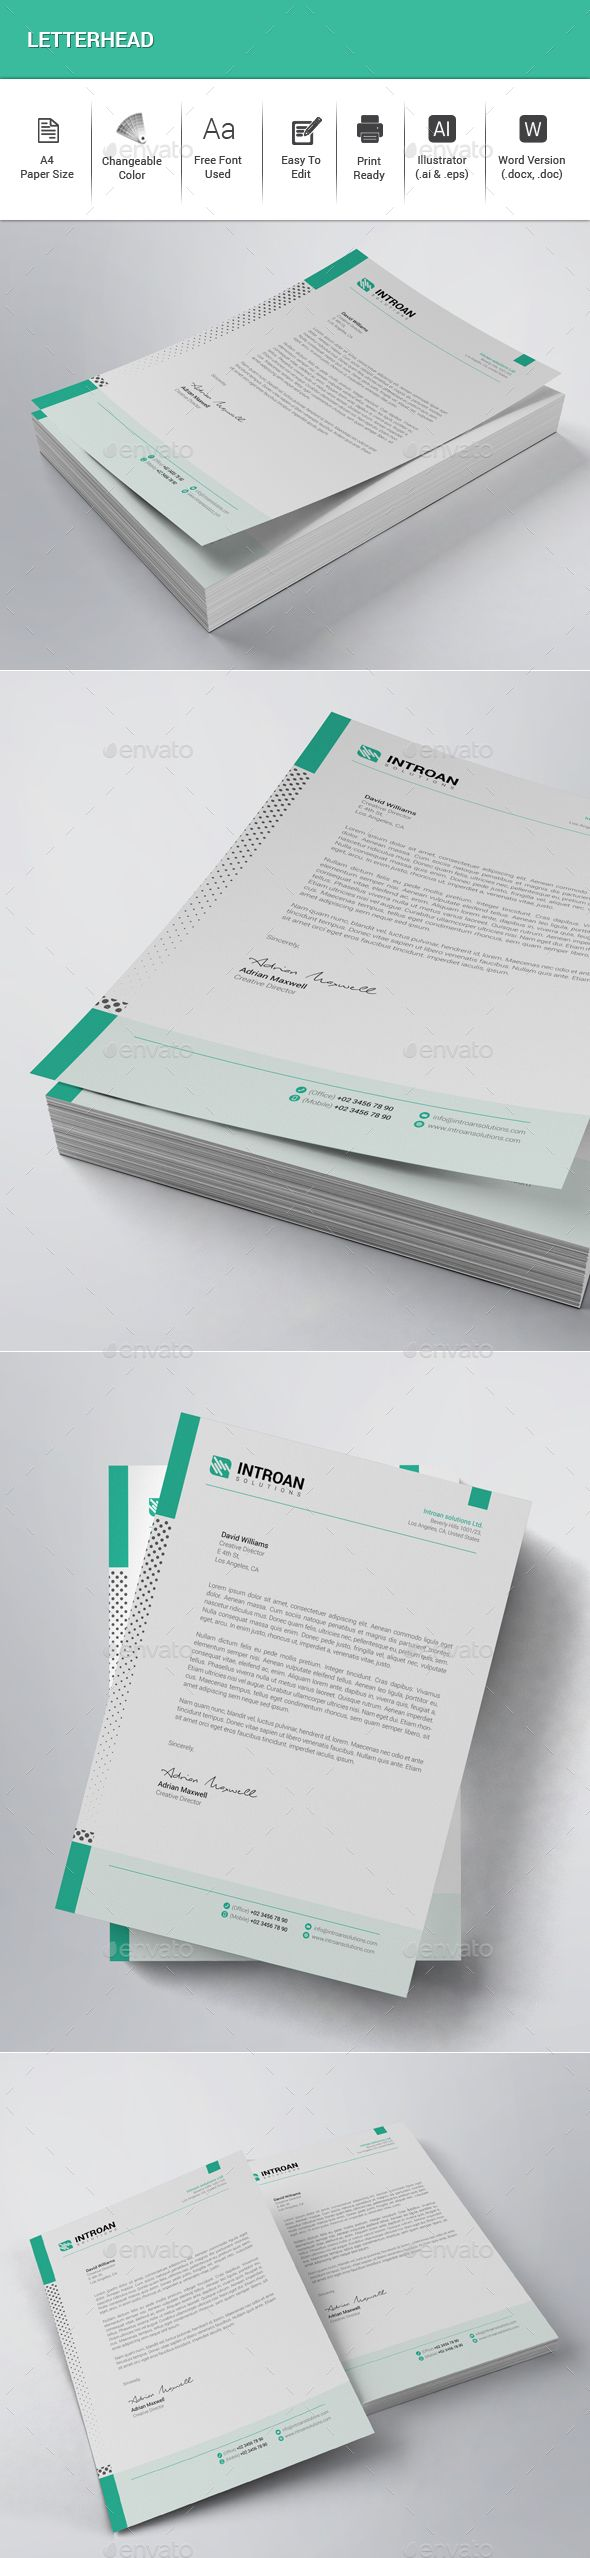 download stationary templates